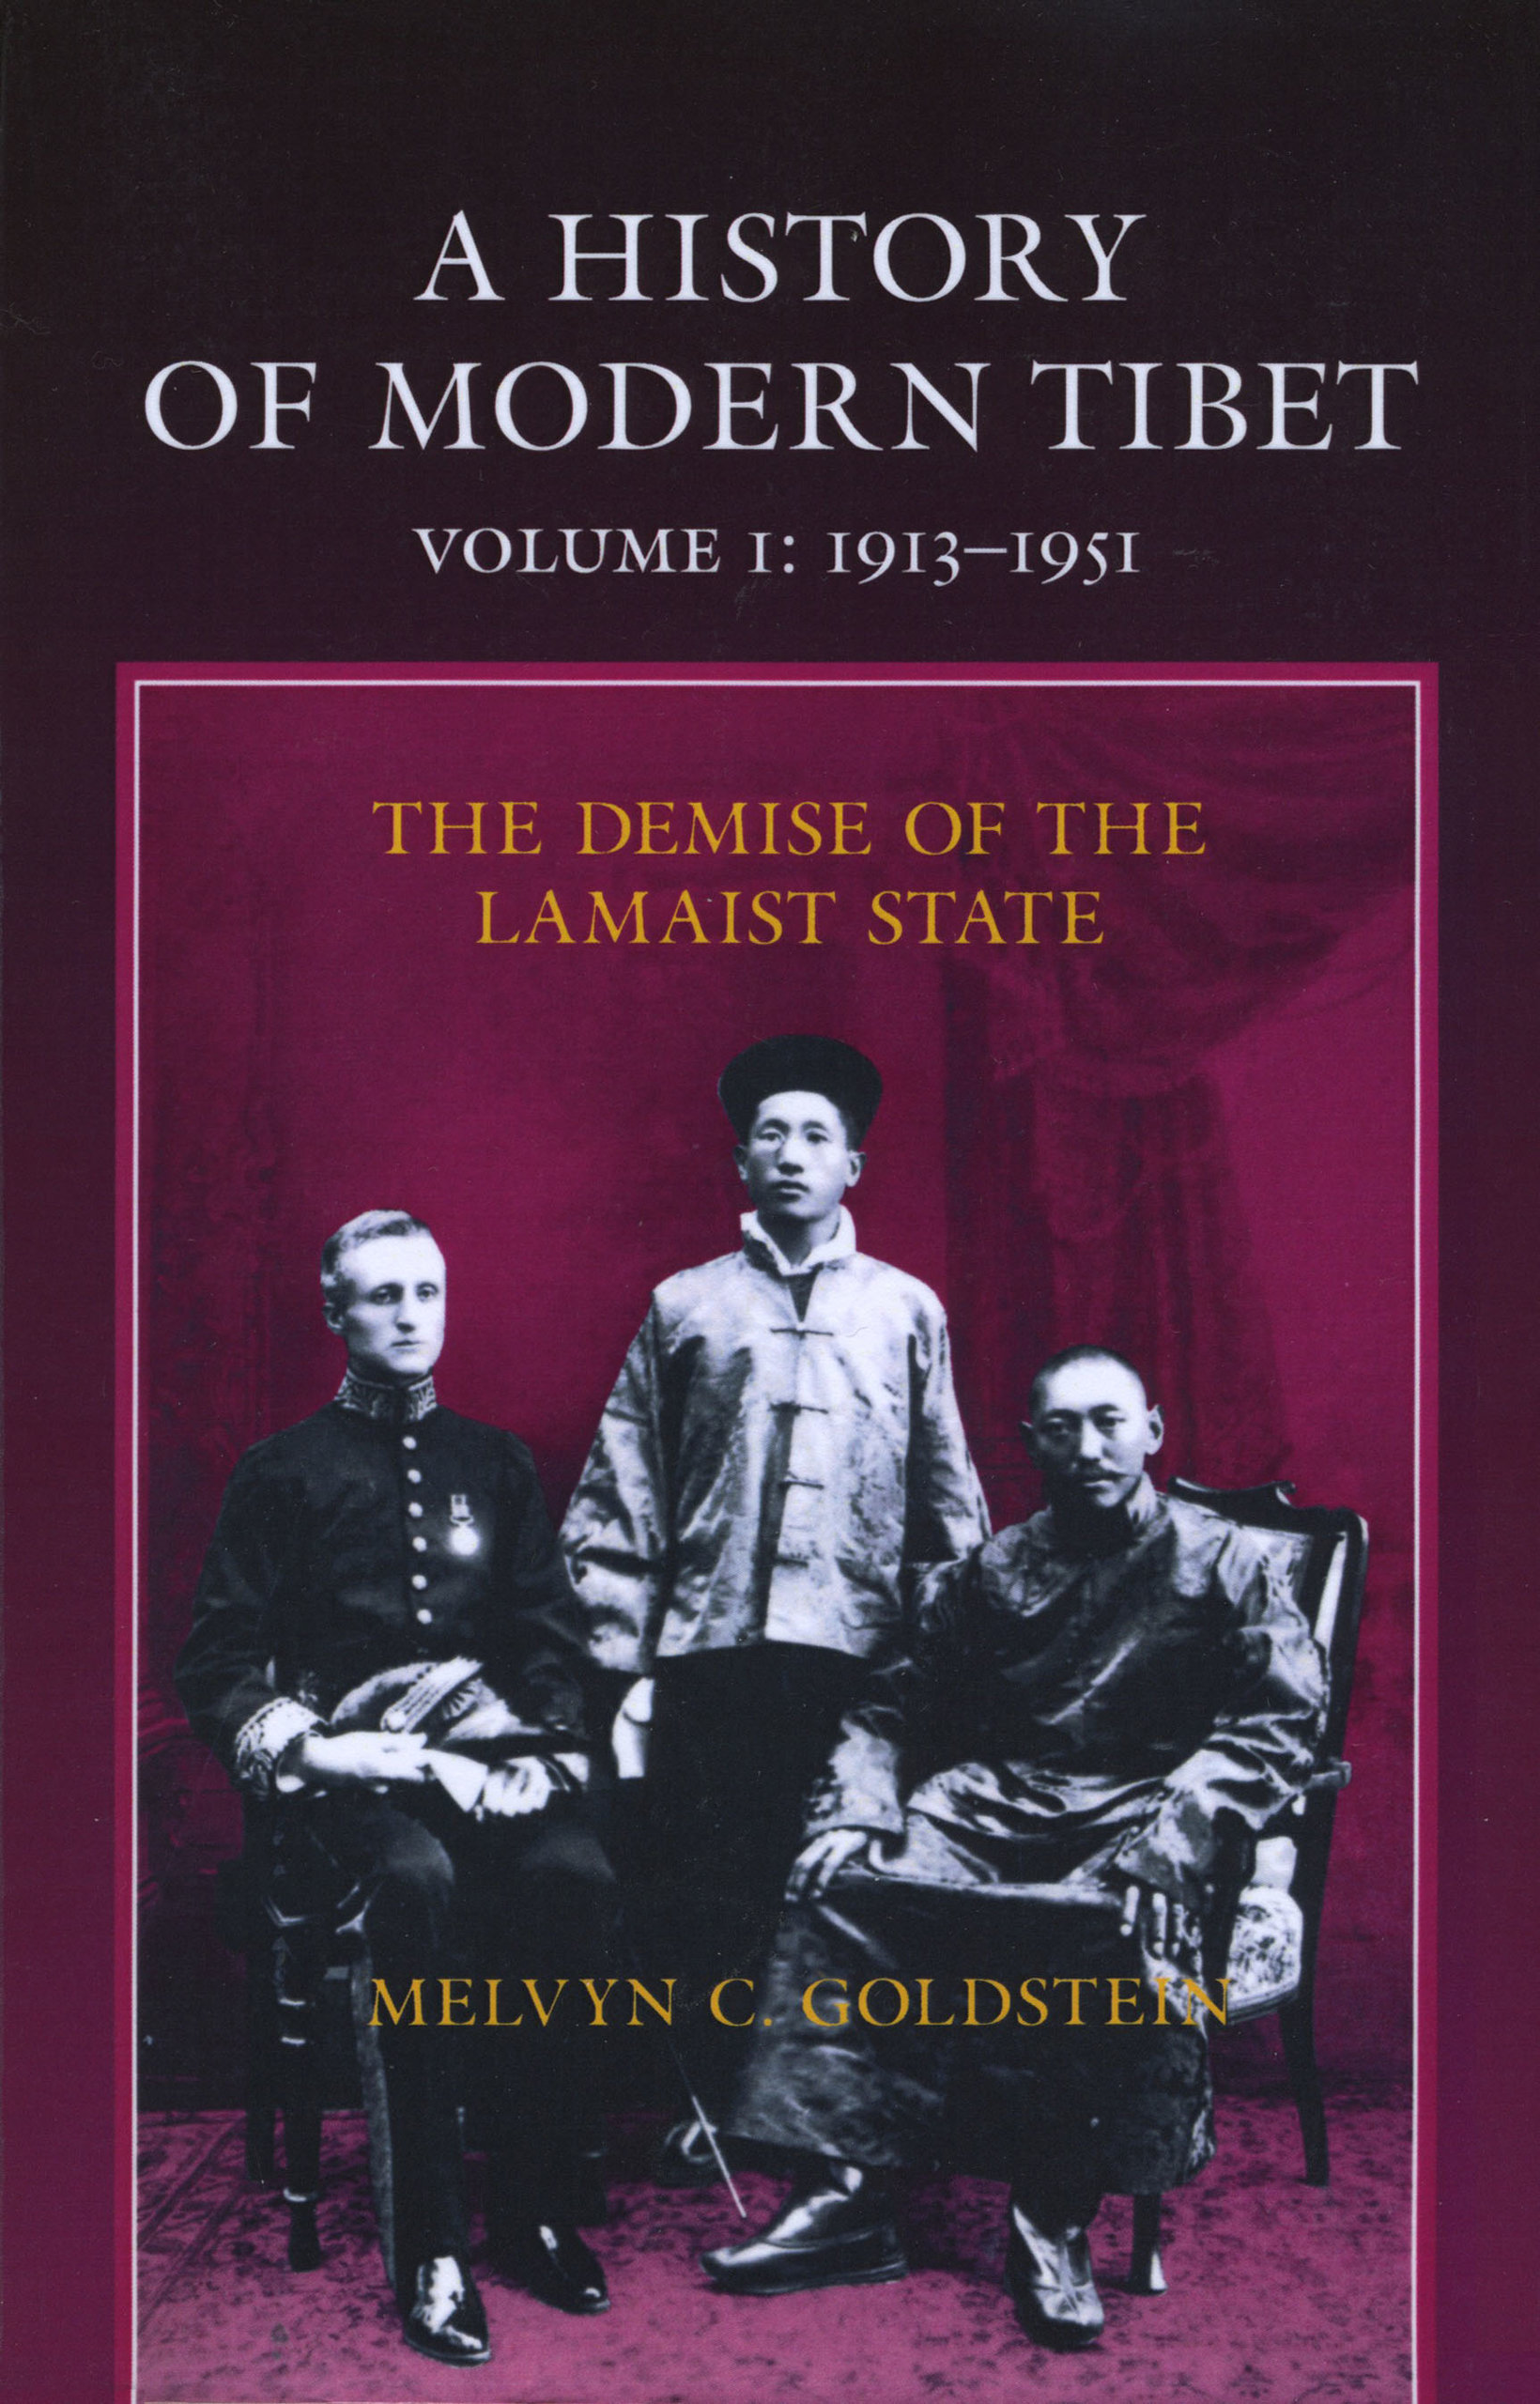 A history of modern Tibet, 1913-1951 : the demise of the lamaist State / Melvyn C. Goldstein